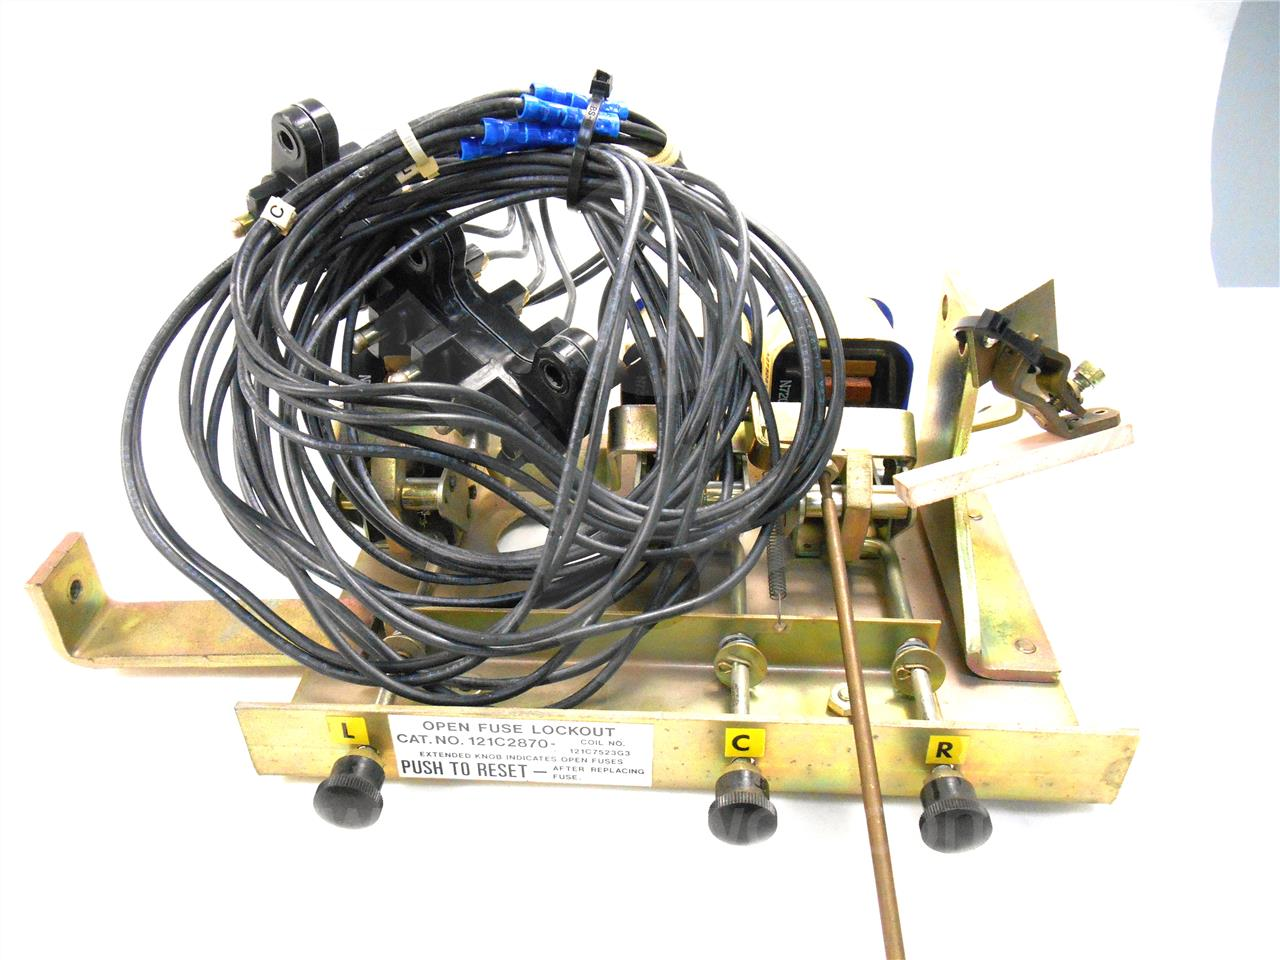 GE BLOWN FUSE TRIP INDICATOR ASSEMBLY